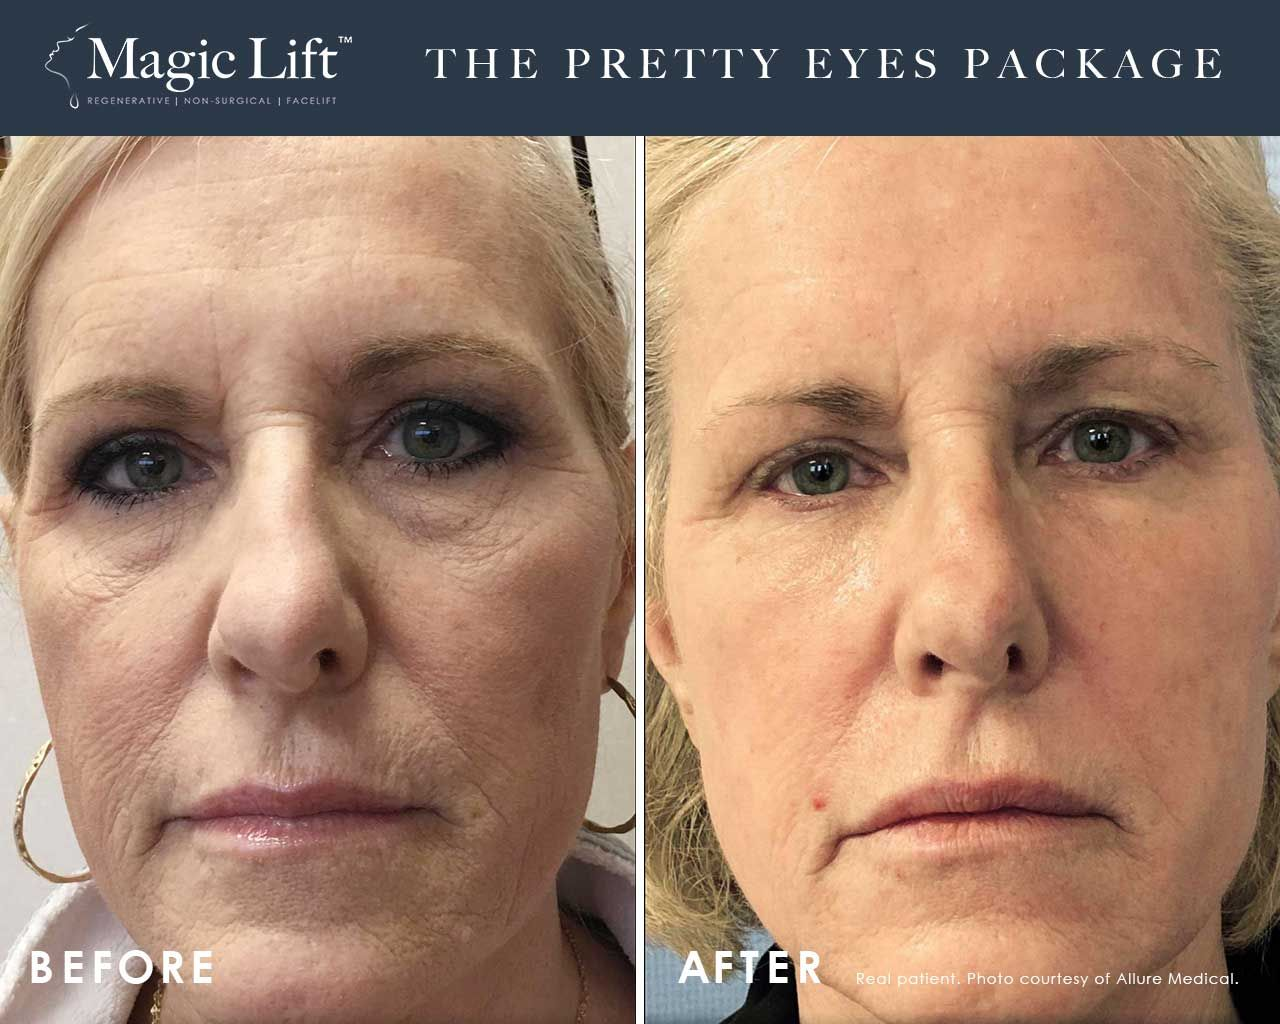 Before and After Magic Lift (Non-Surgical Face Lift) treatment #3